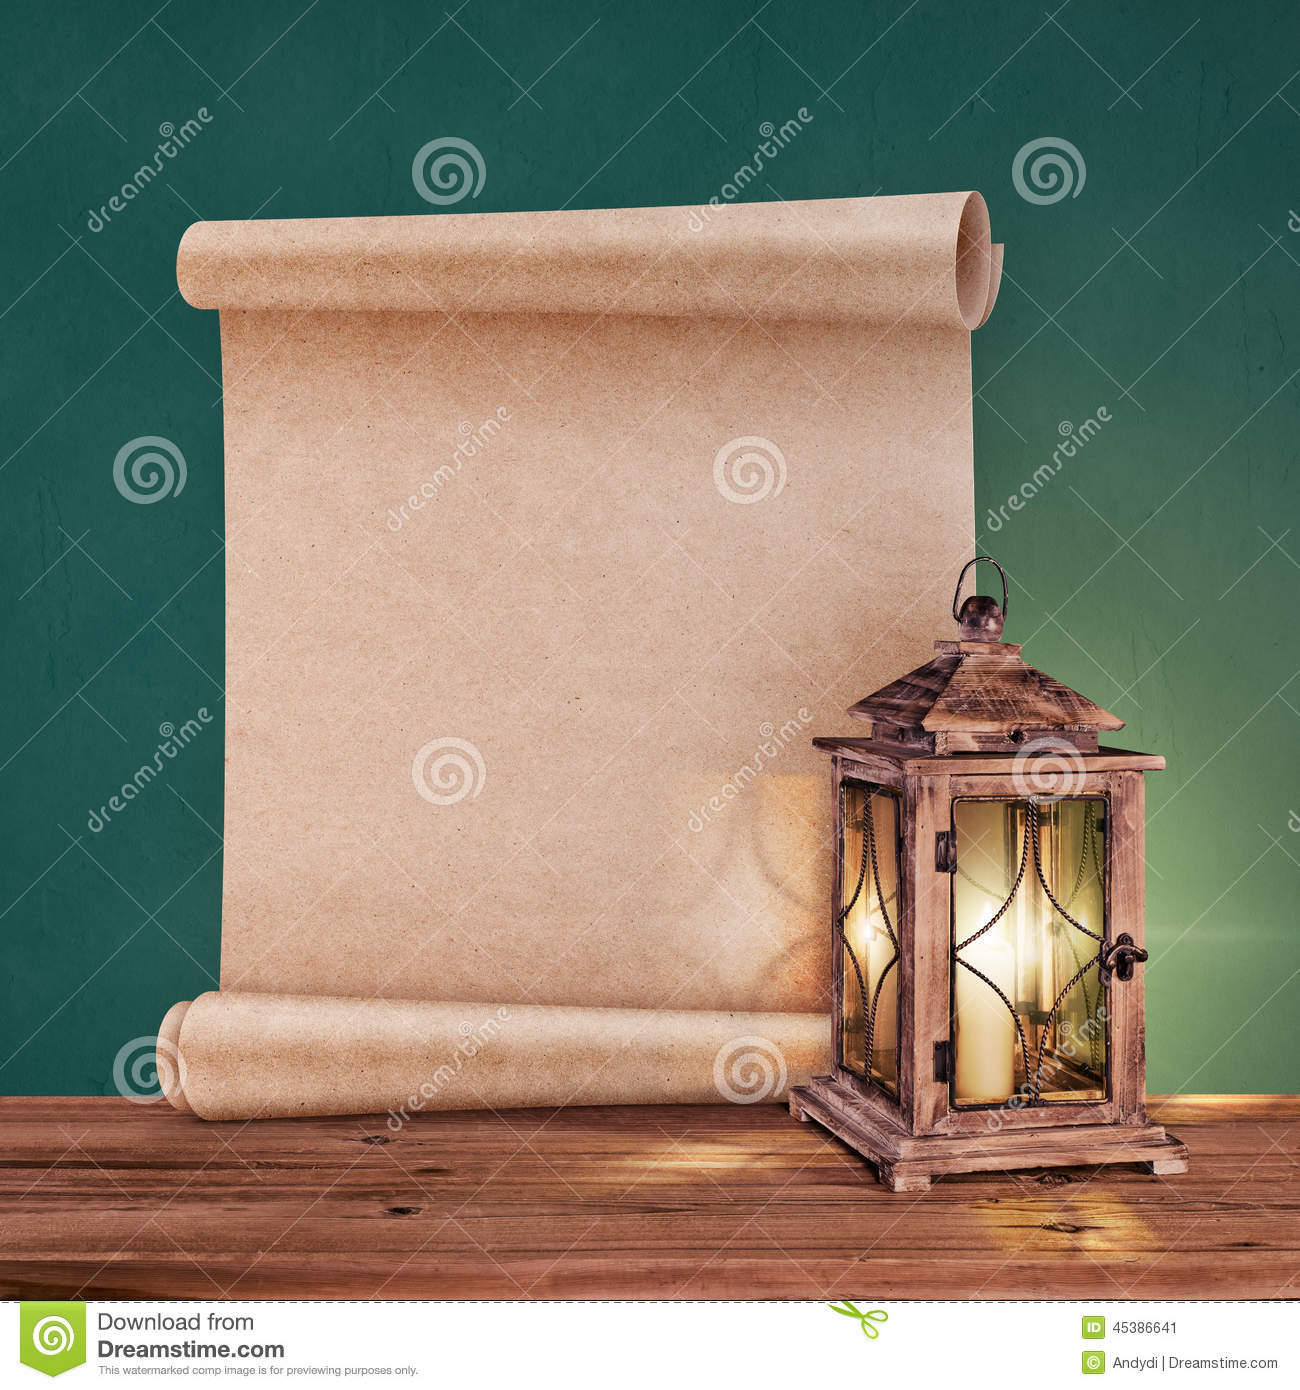 Antique Scrollimgs: Vintage Lantern With Antique Scroll On Green Background